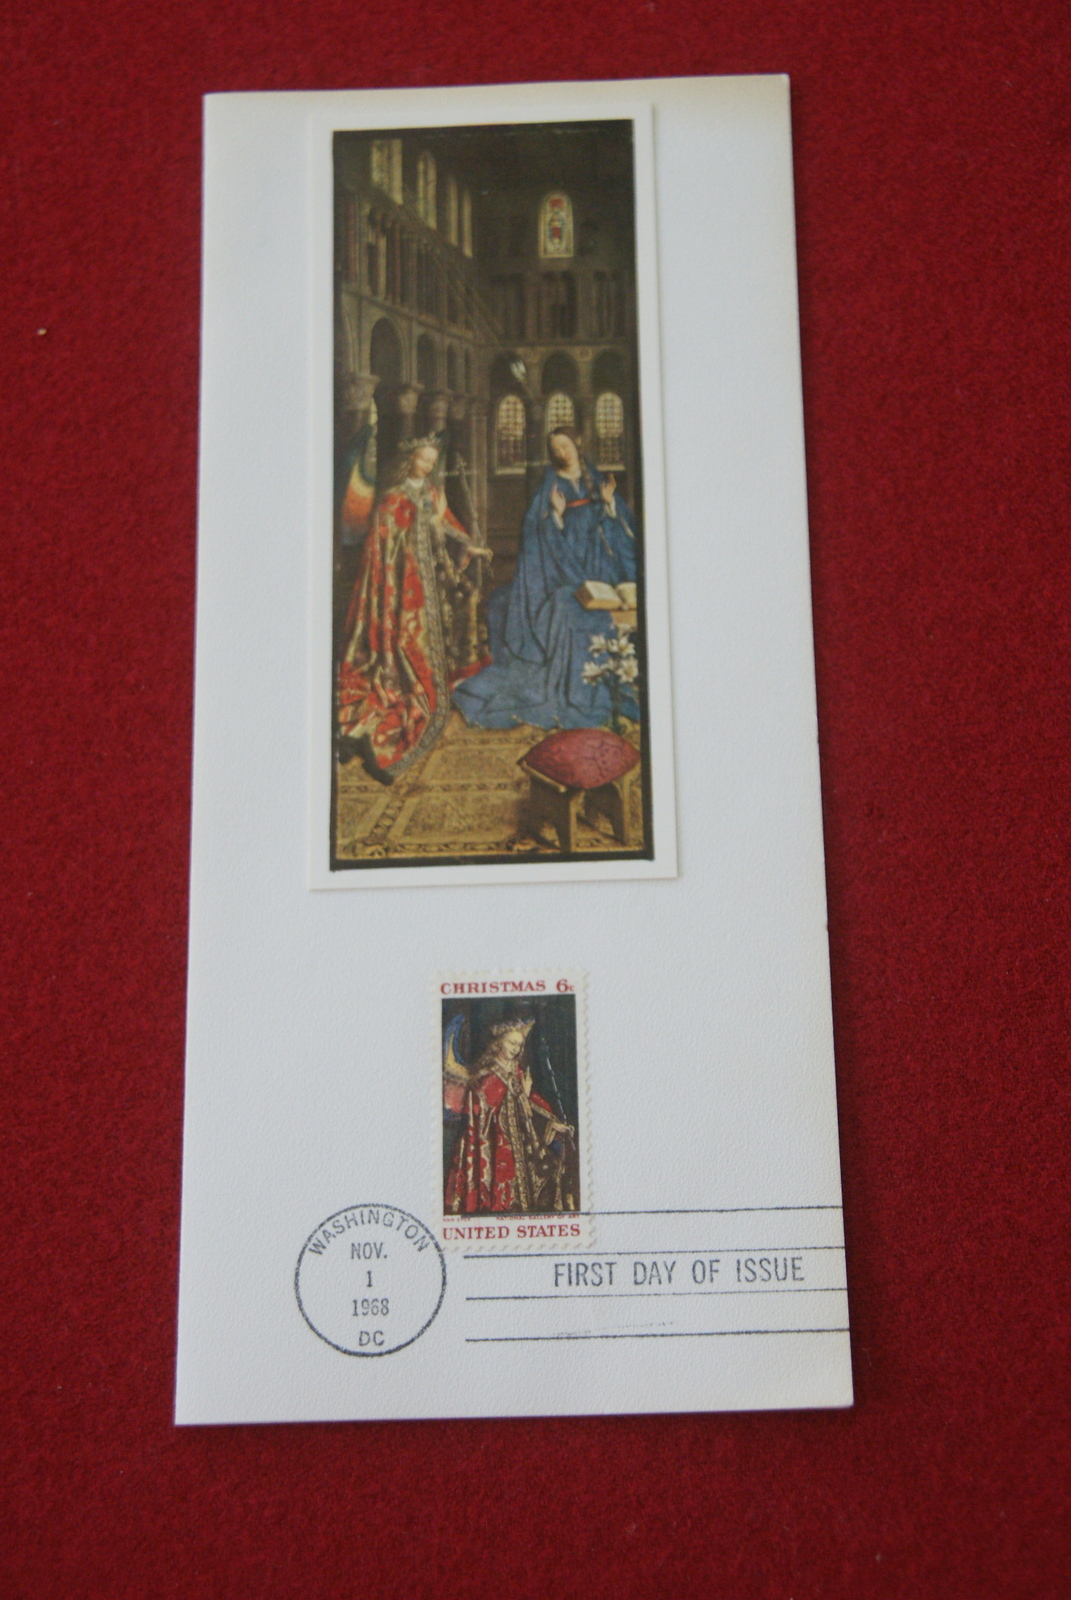 US 1968 First Day Of Issue Christmas Card